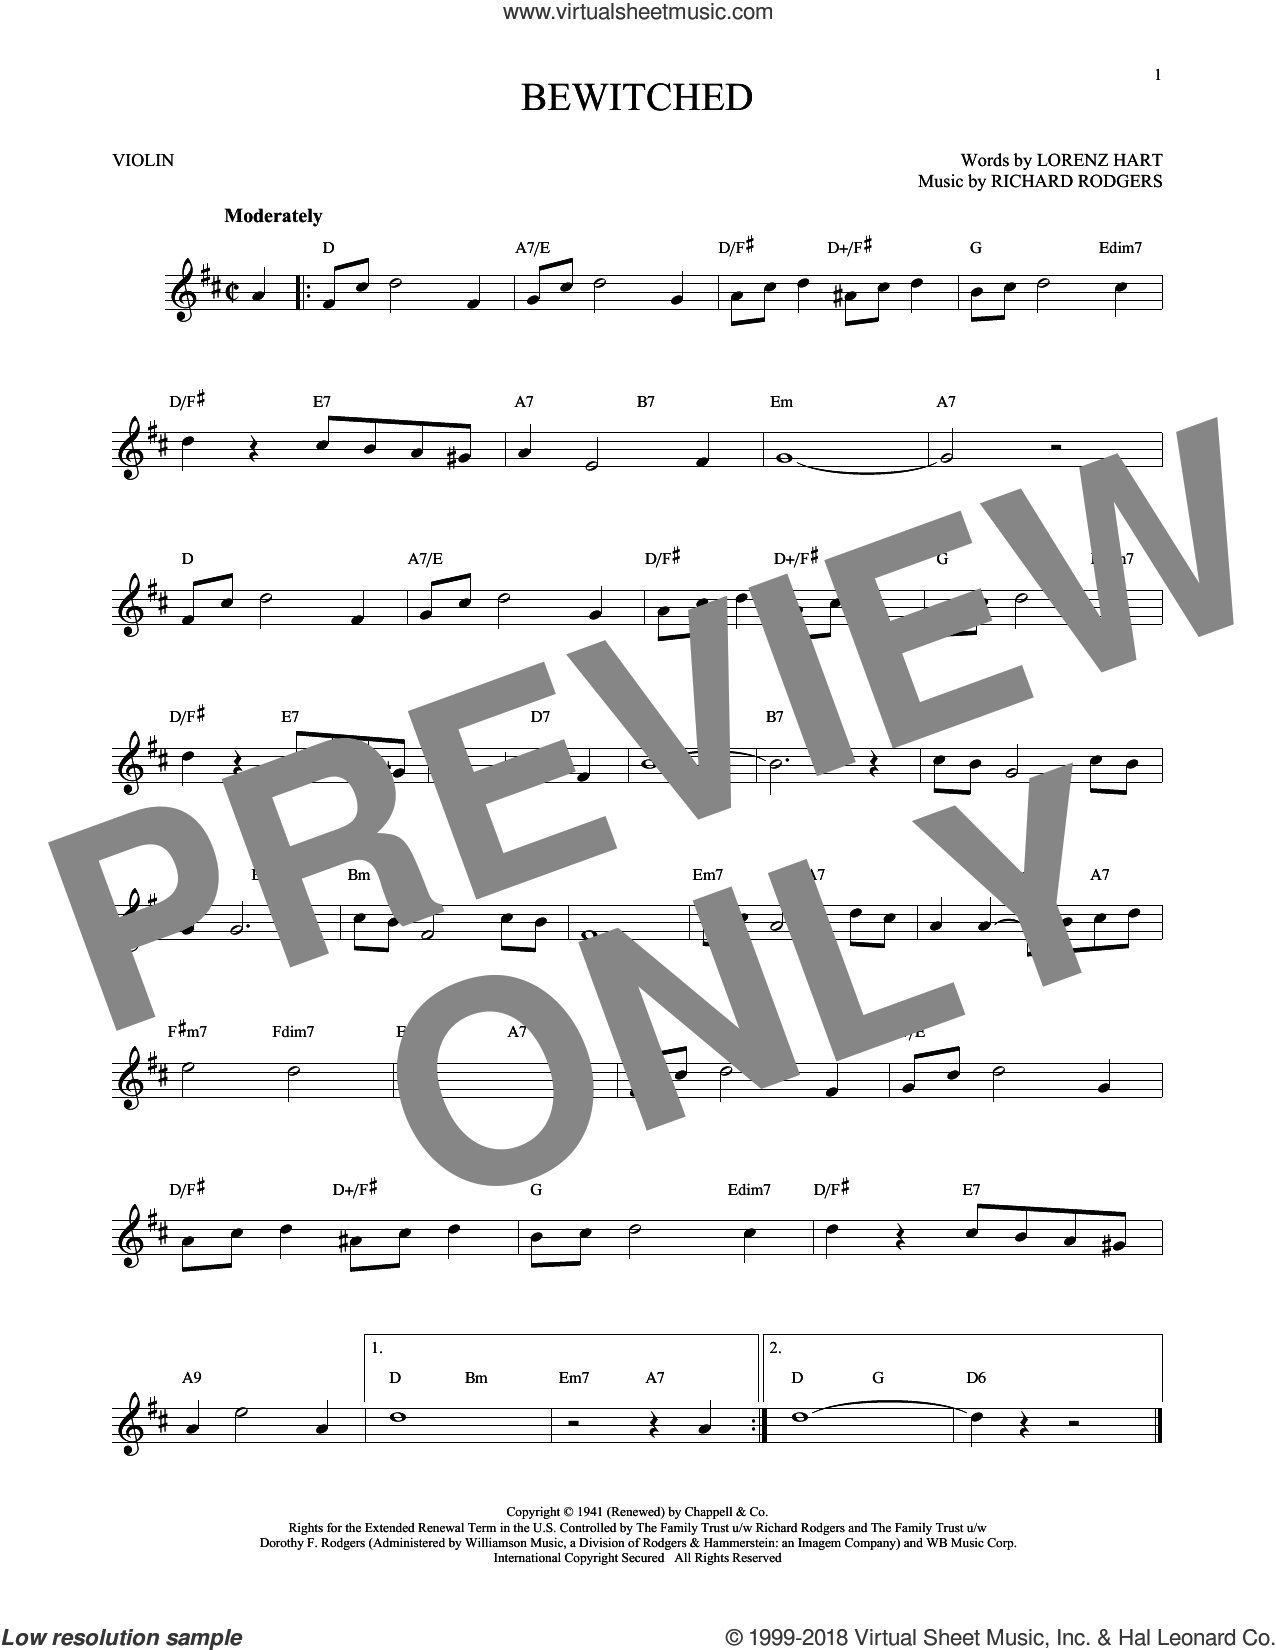 Bewitched sheet music for violin solo by Rodgers & Hart, Betty Smith Group, Lorenz Hart and Richard Rodgers, intermediate skill level